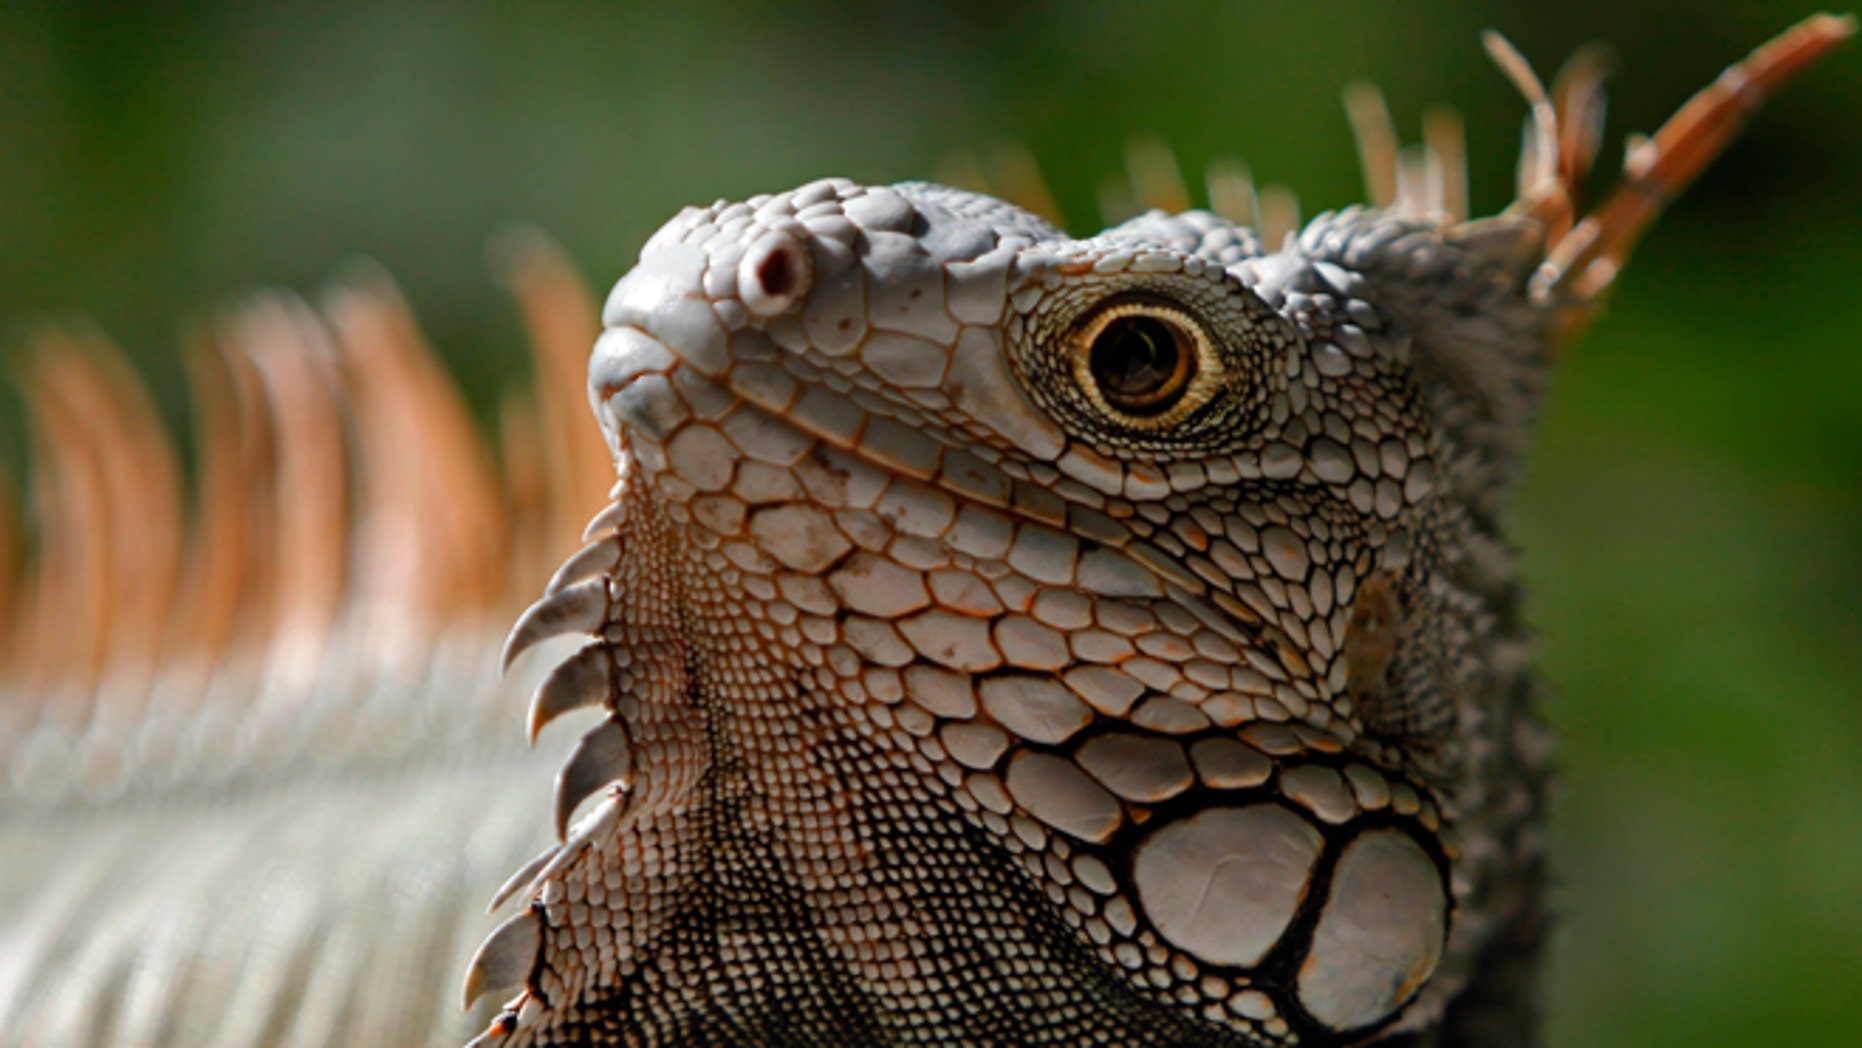 In this Saturday, Dec. 13, 2014 photo, a green Iguana basks in the protected area of Cabezas de San Juan in Fajardo, Puerto Rico. The Cabezas de San Juan nature reserve has seven distinct coastal ecosystems and one of the few bioluminescent bays in the world. (AP Photo/Ricardo Arduengo)